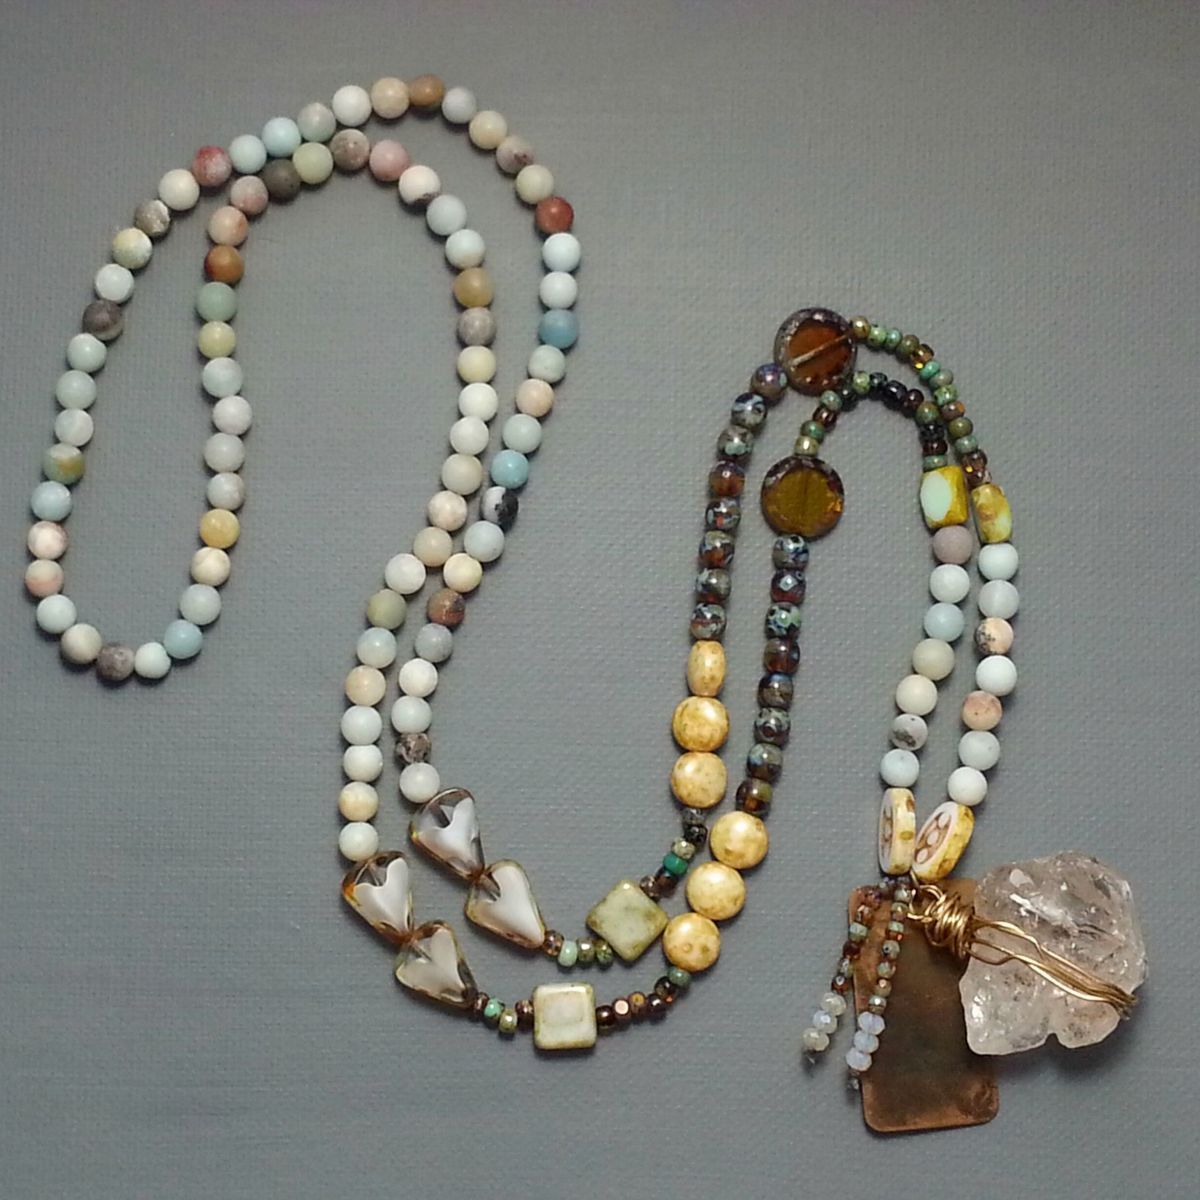 Long Beaded Necklace with Quartz Stone - product images  of